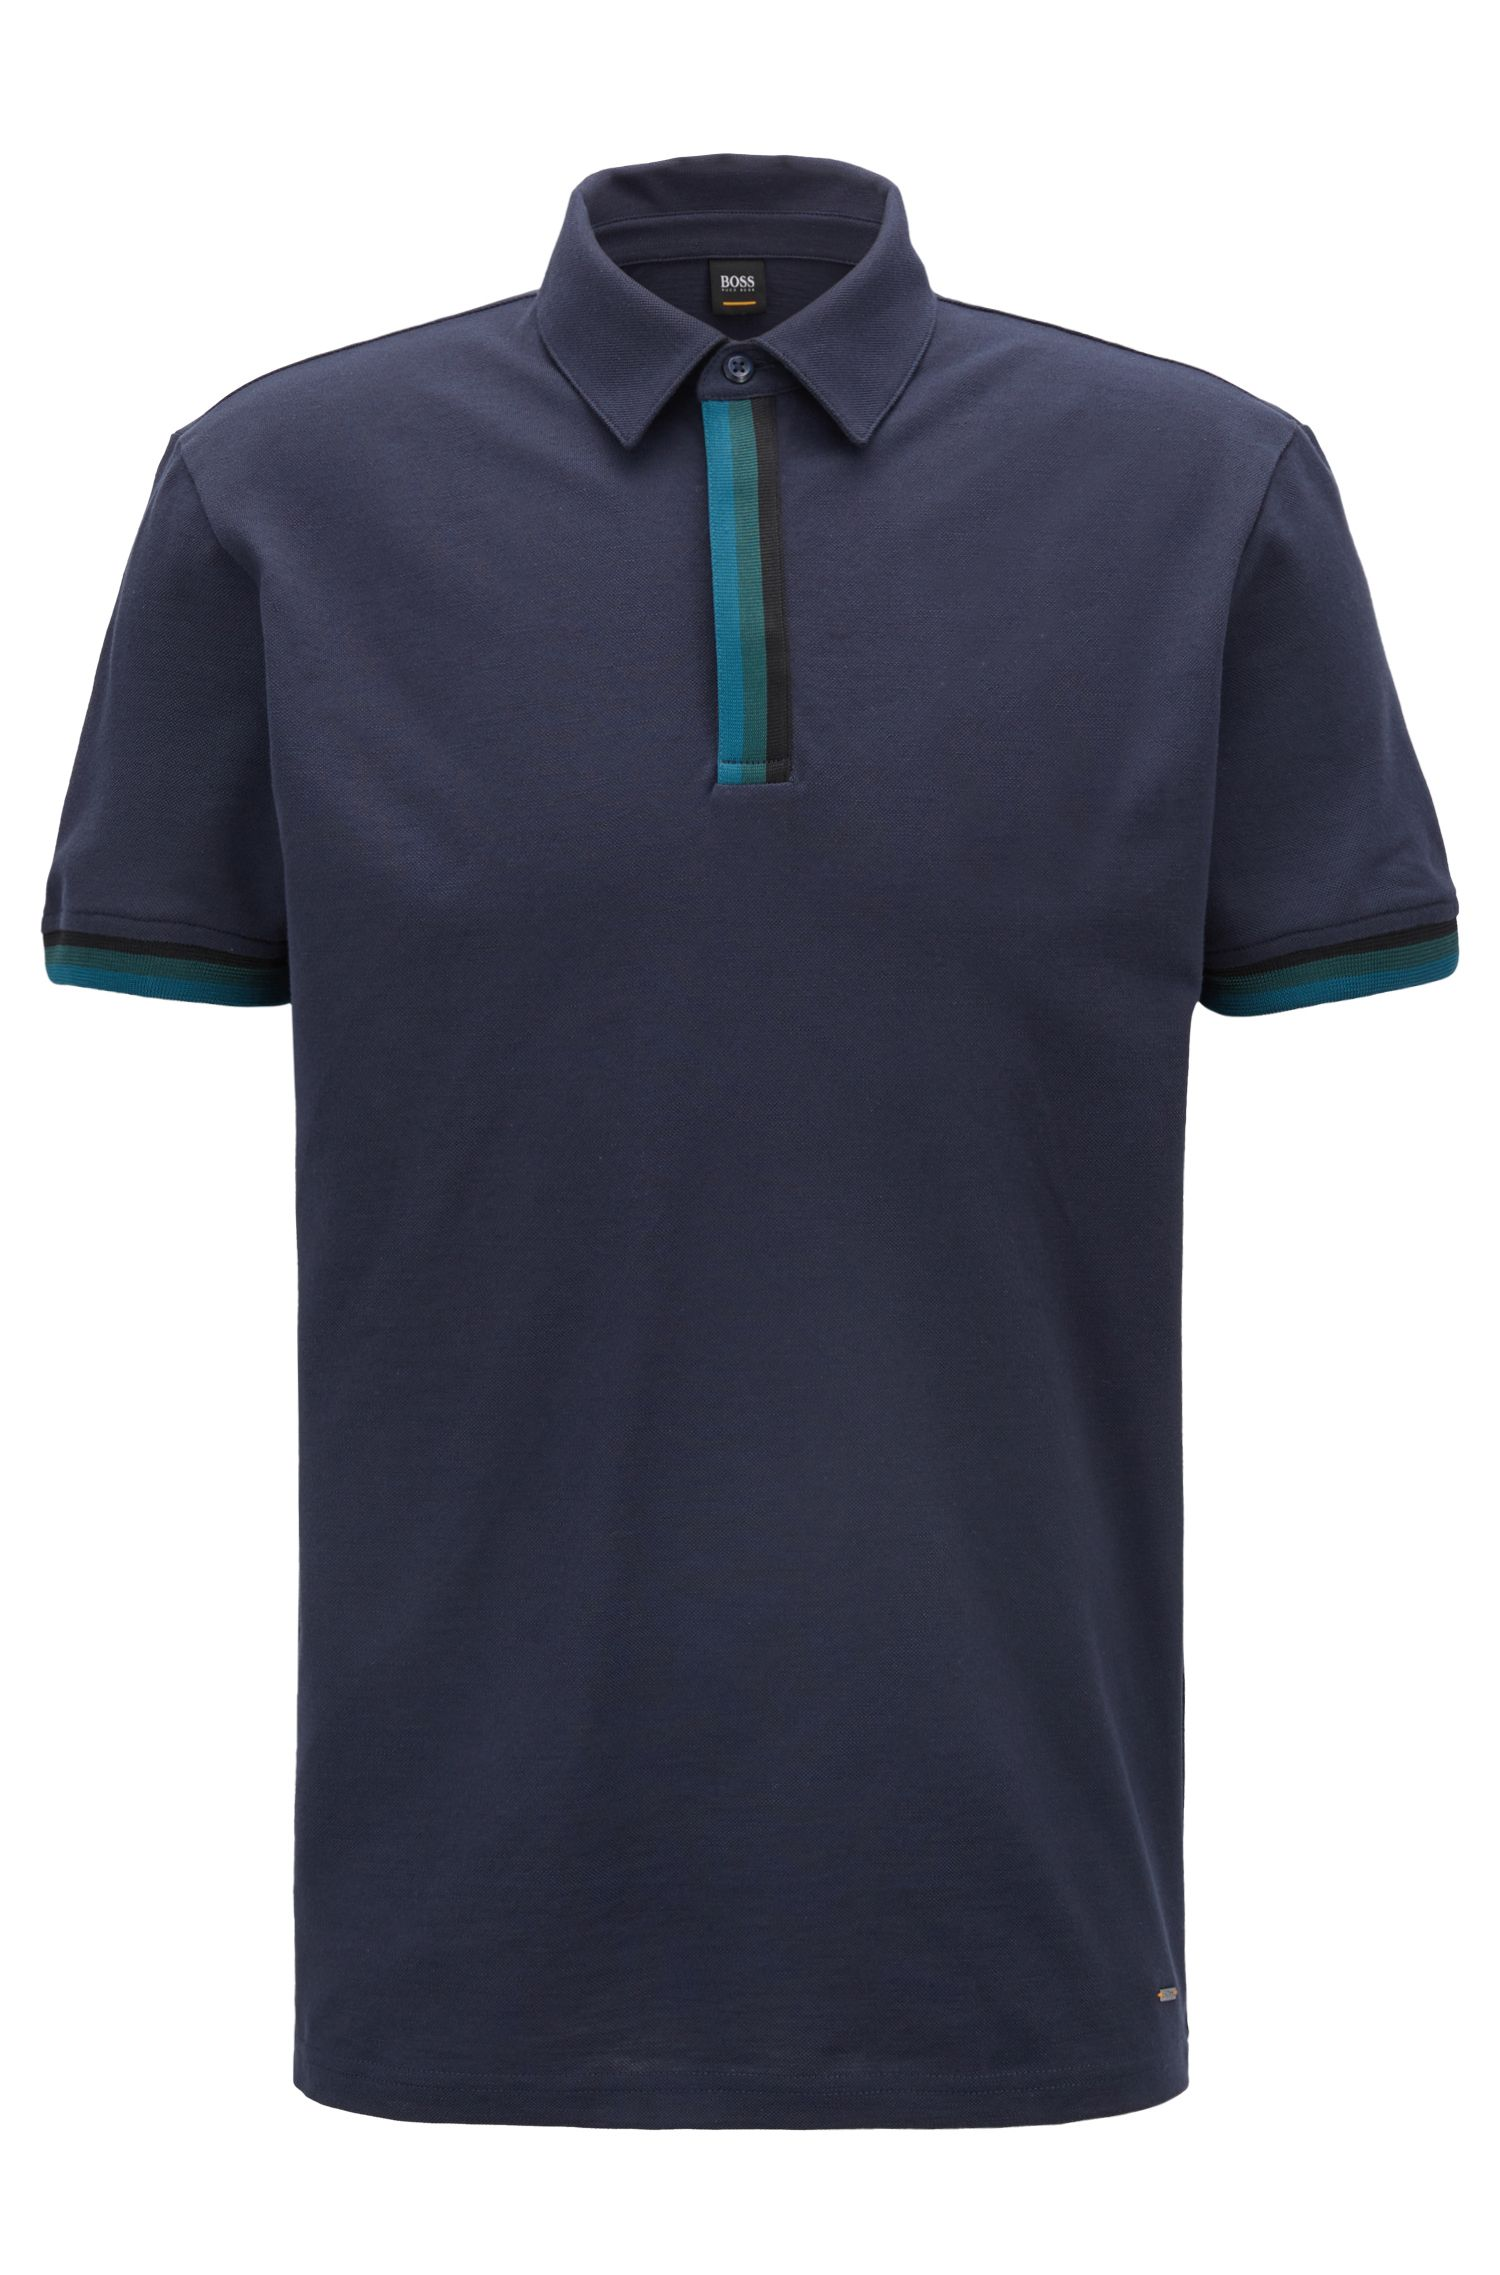 Relaxed-fit piqué polo shirt with striped tape trims